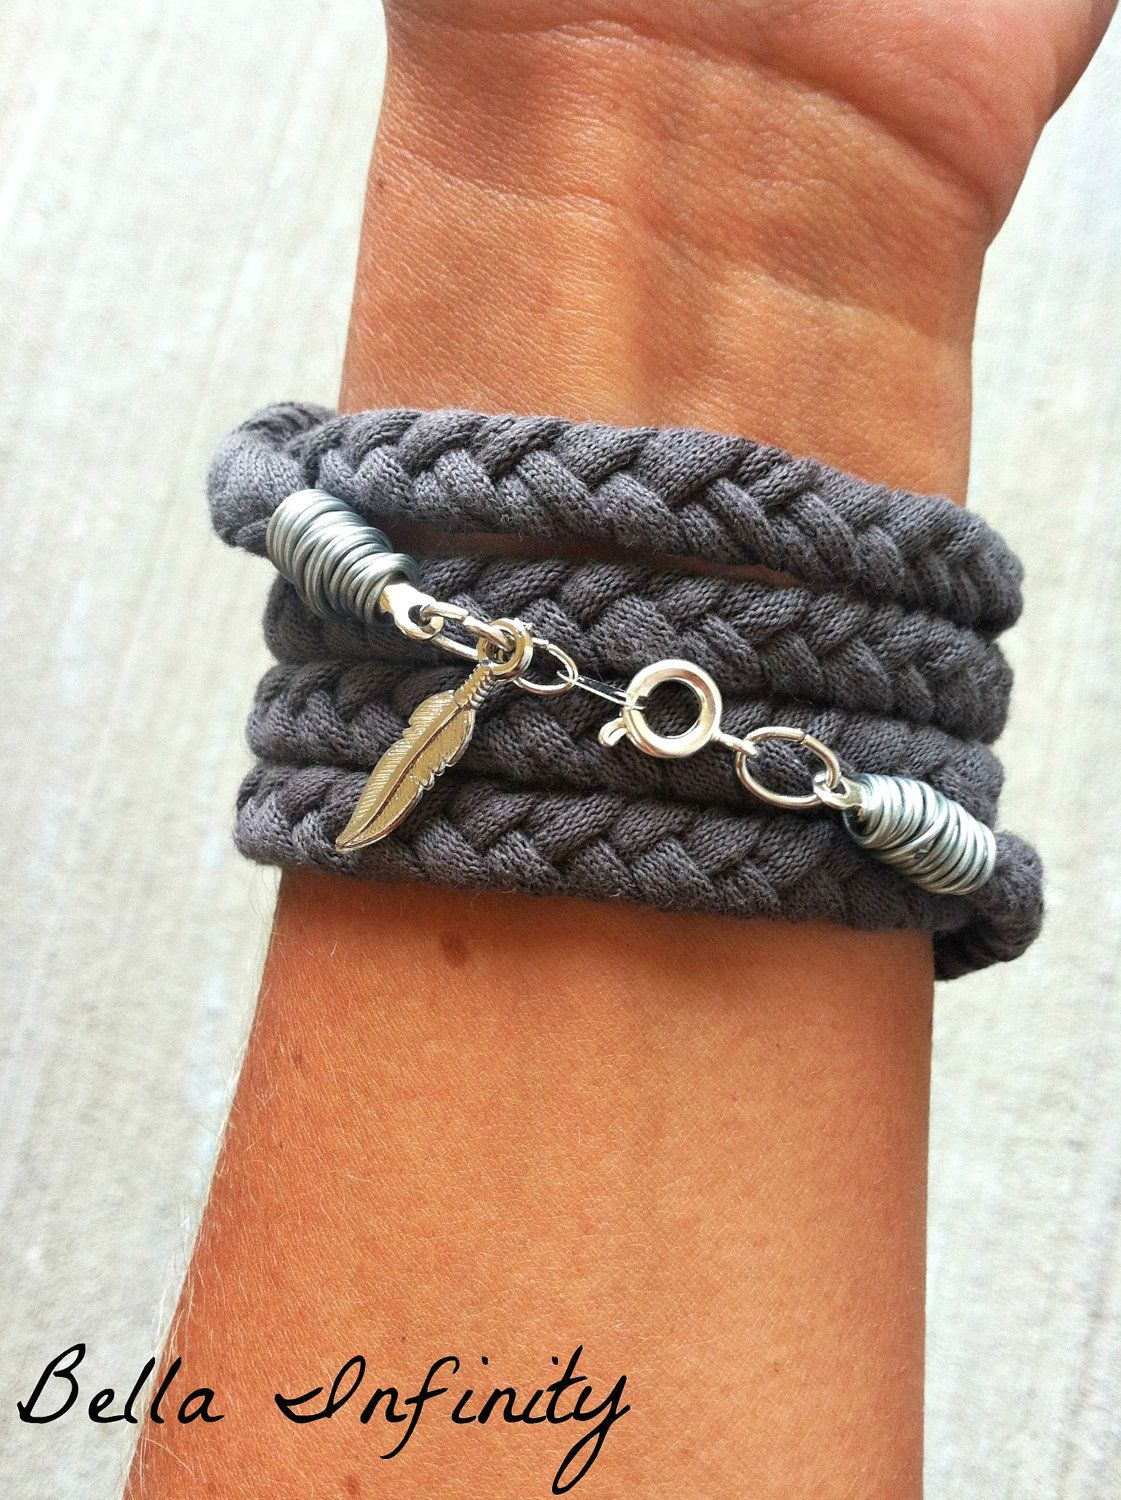 Bella Infinity Braided Wrap Bracelet Grey Up-Cycled Jersey Silver Pendant Boho Chic. $15.00, via Etsy.